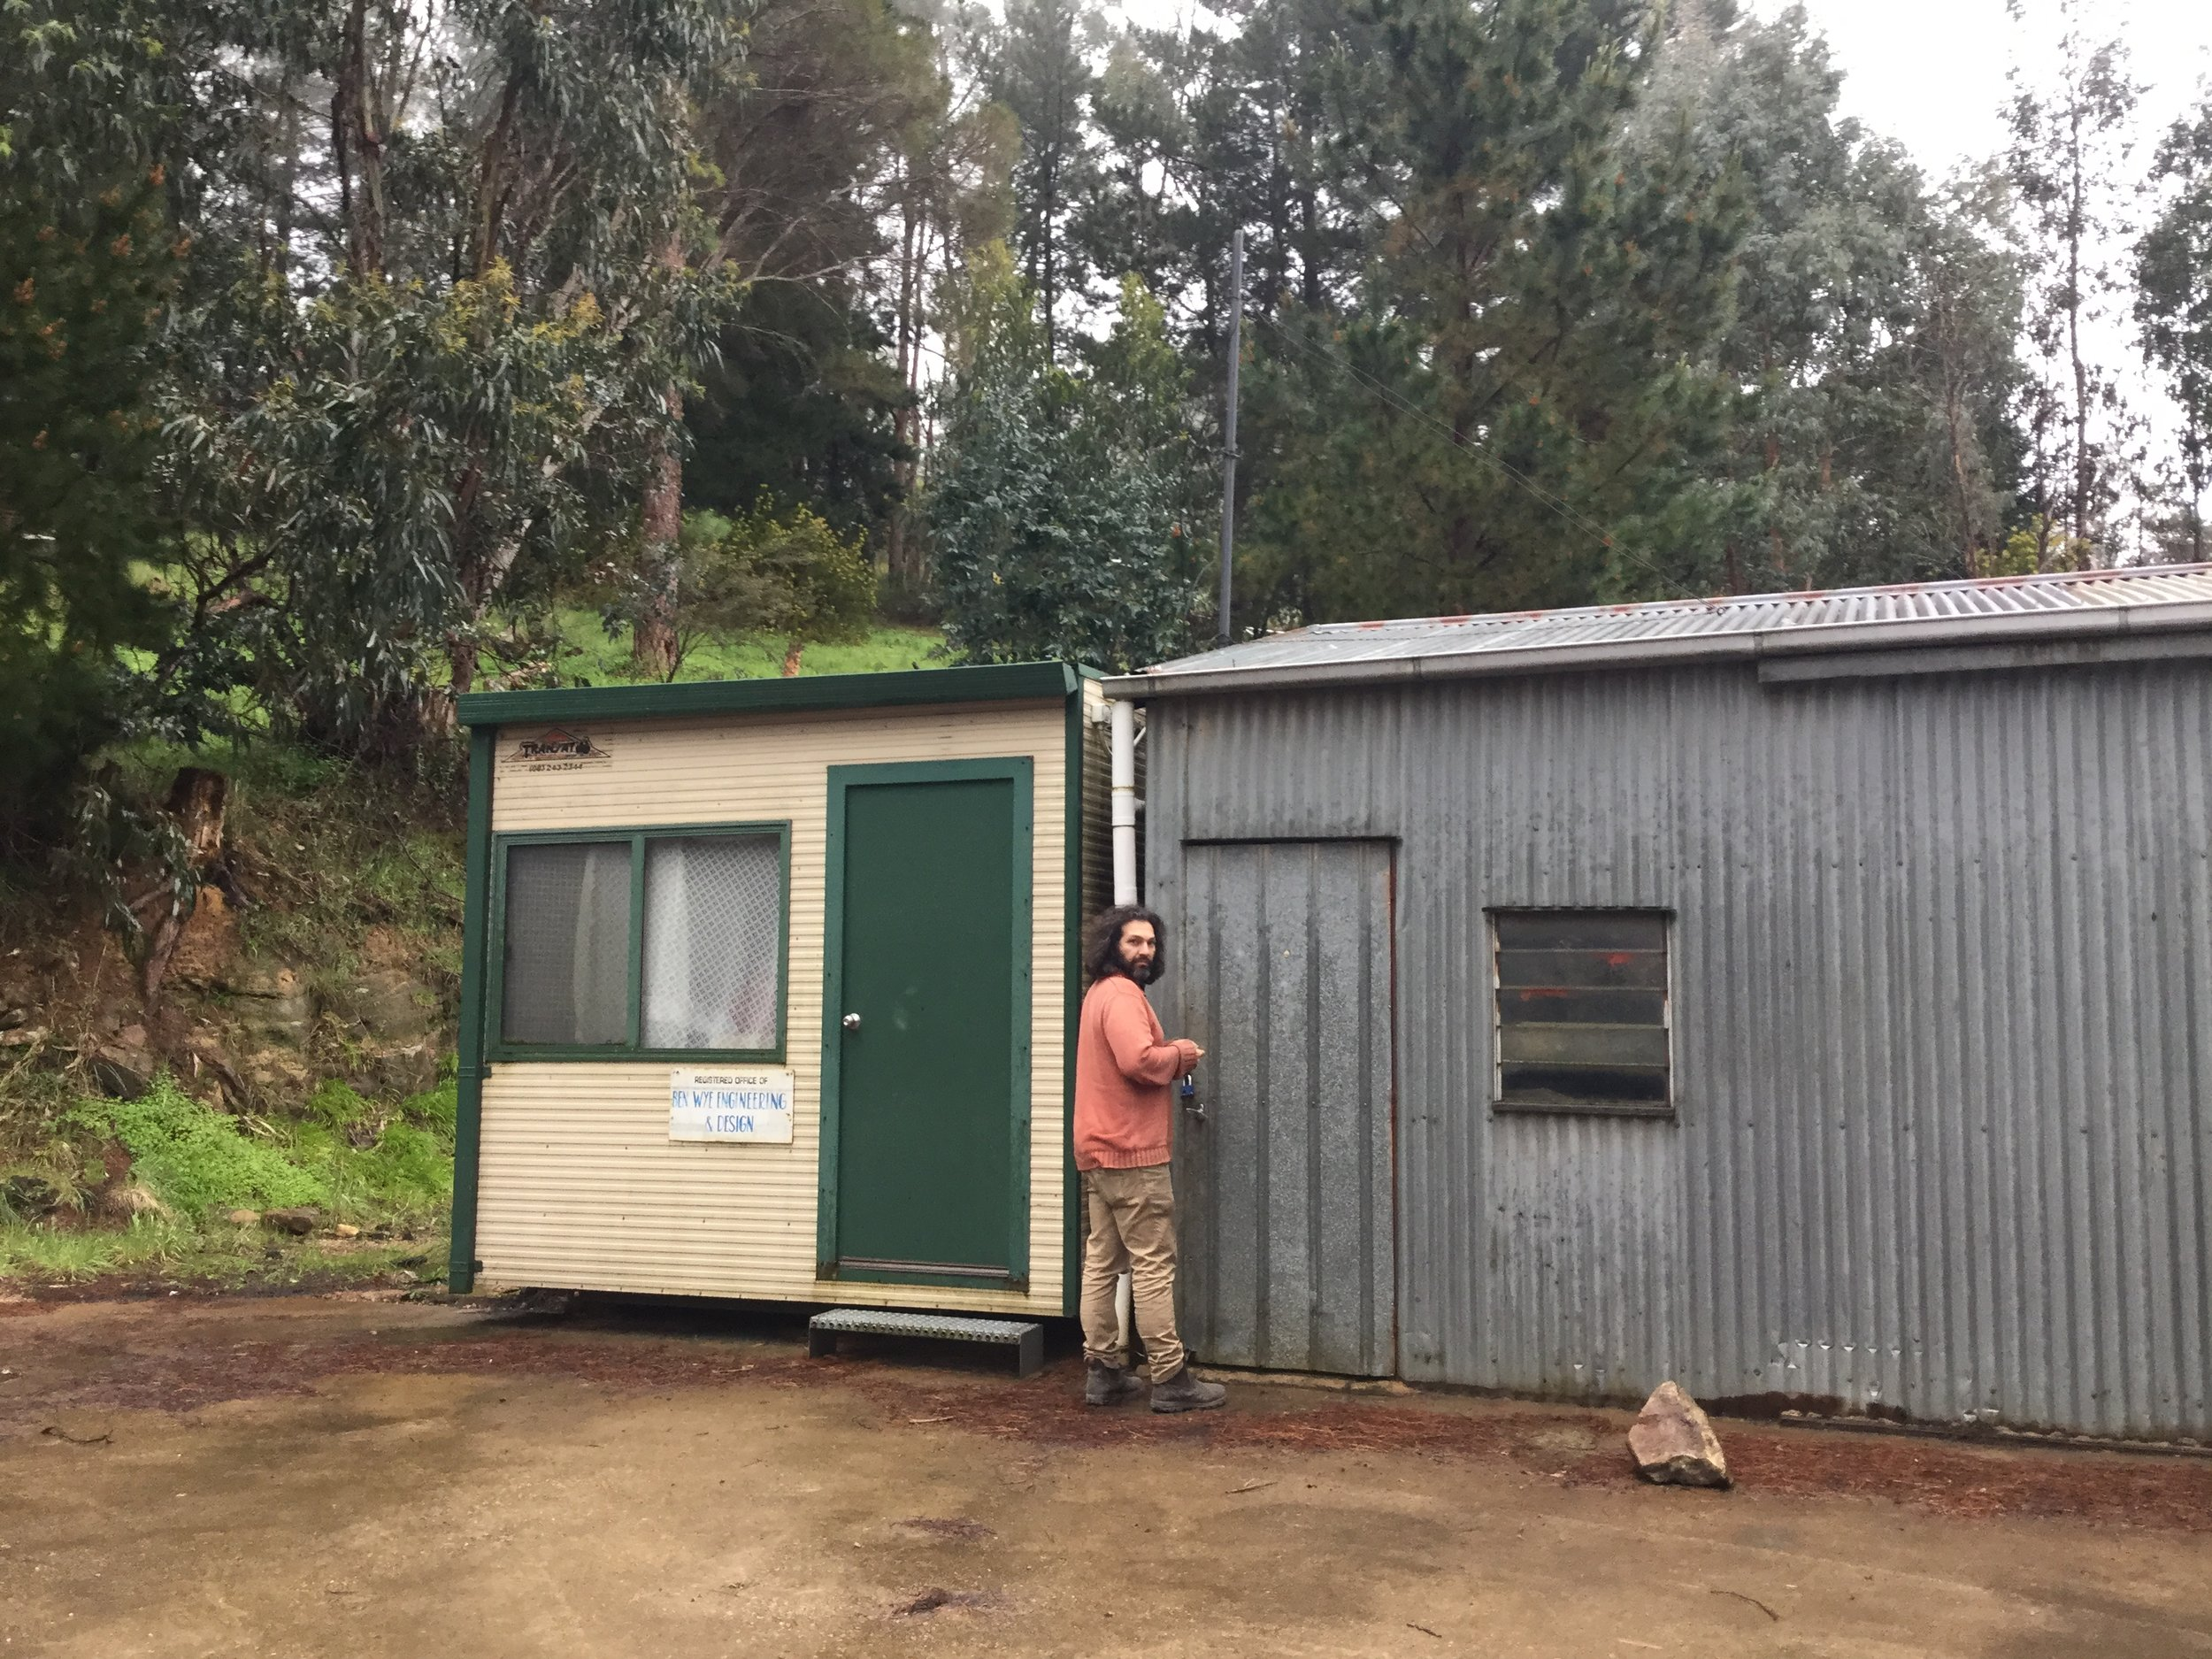 The Other Right - New Winery Shed